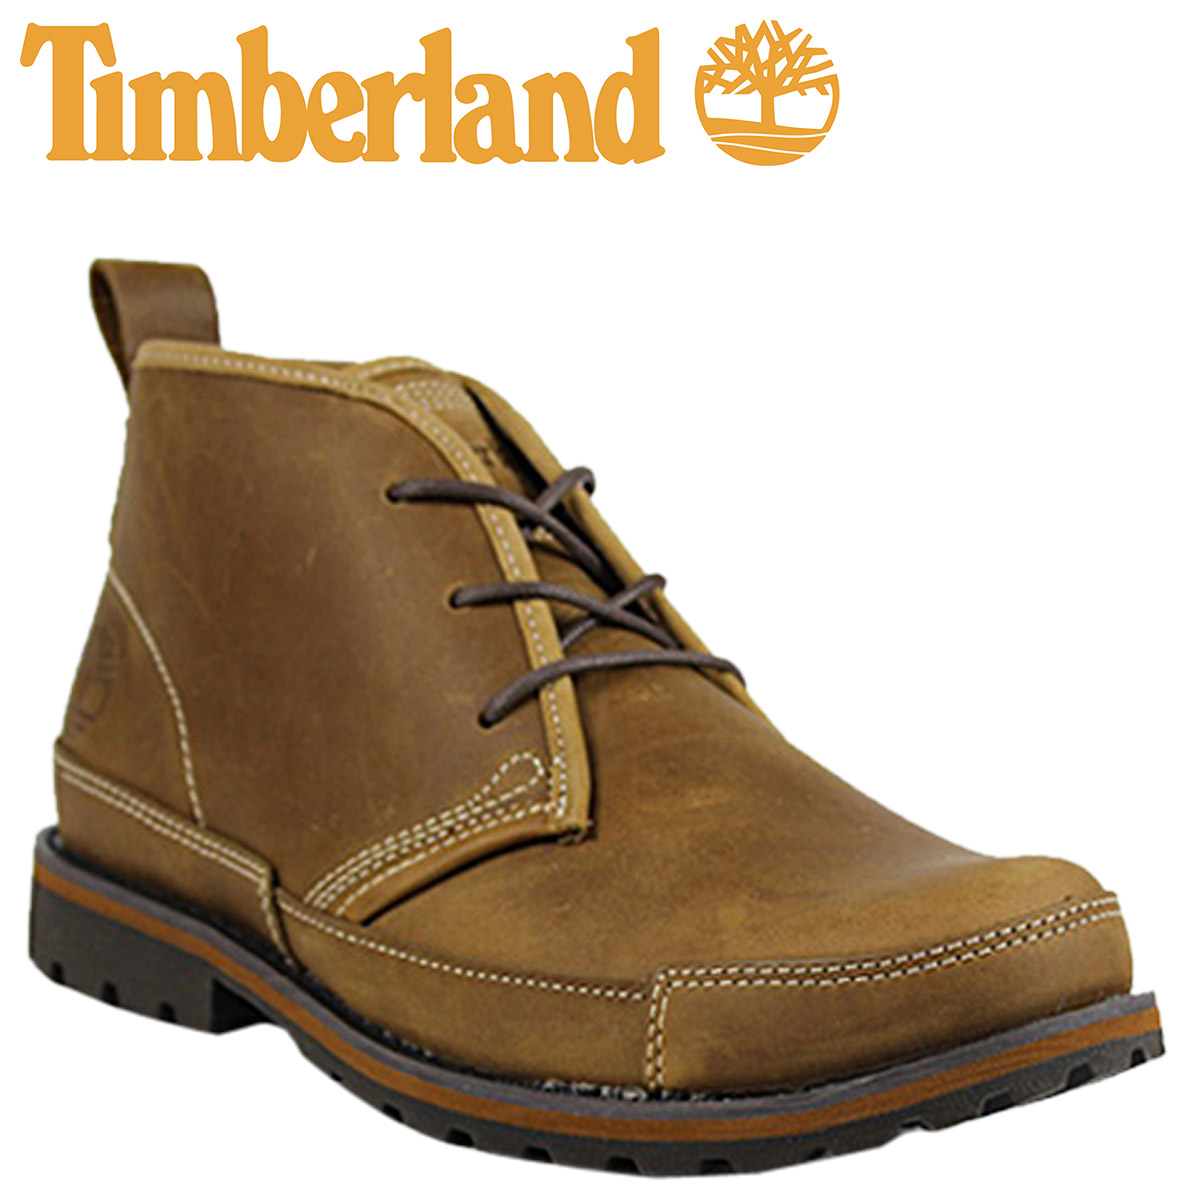 Timberland Timberland Earthkeepers chukka boots 74142 Earthkeepers  Barentsburg Plaun Toe Chukka Boot oil leather men s TAN f57114089